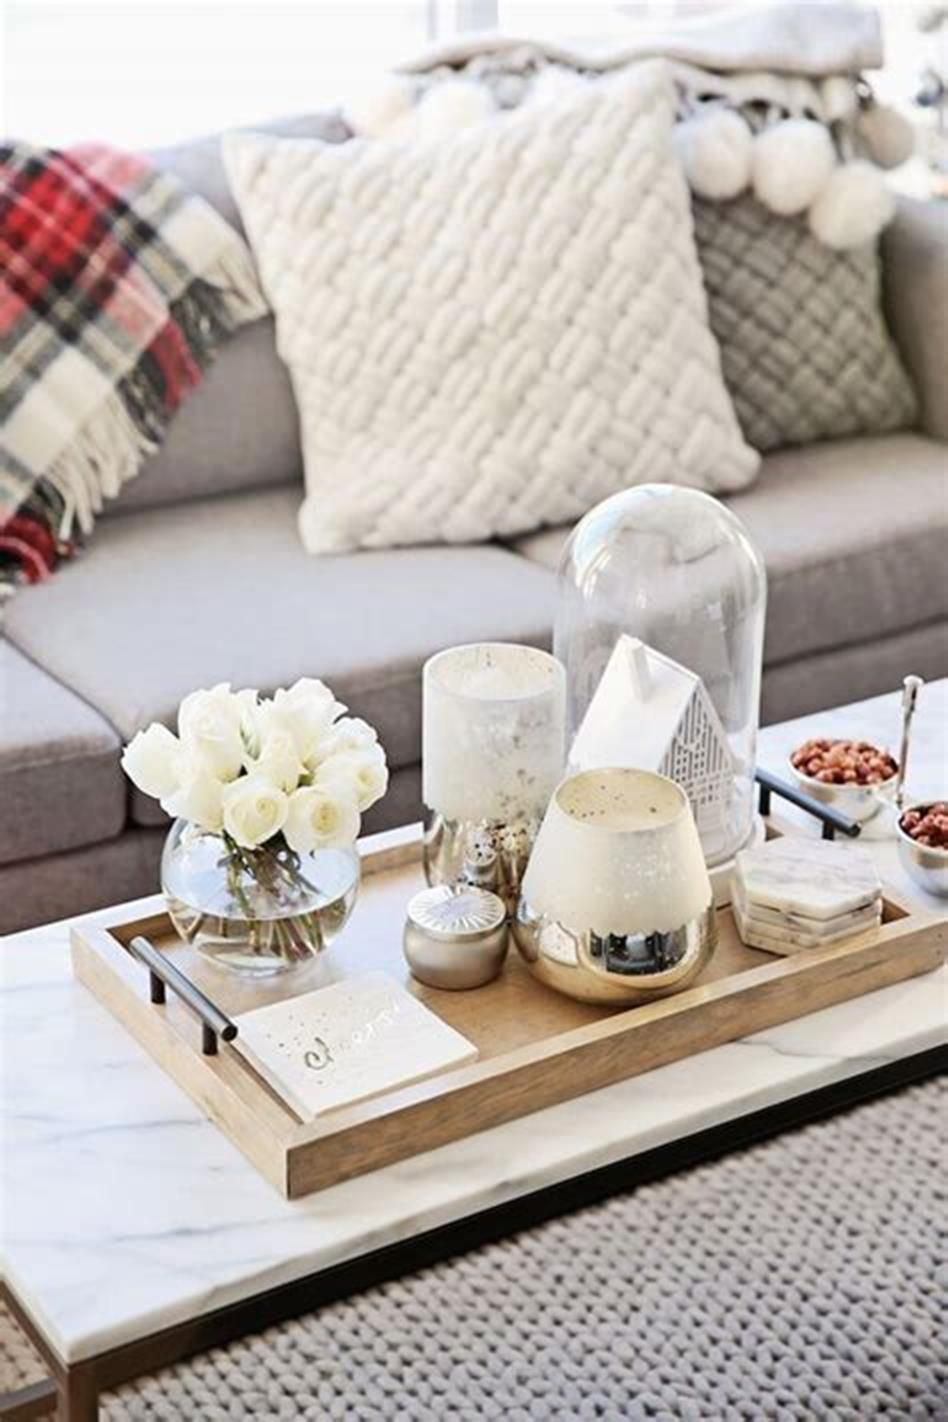 46 Awesome Coffee Table Tray Decor Ideas 5 In 2020 Coffee Table Decor Tray Table Decor Living Room Living Room Coffee Table